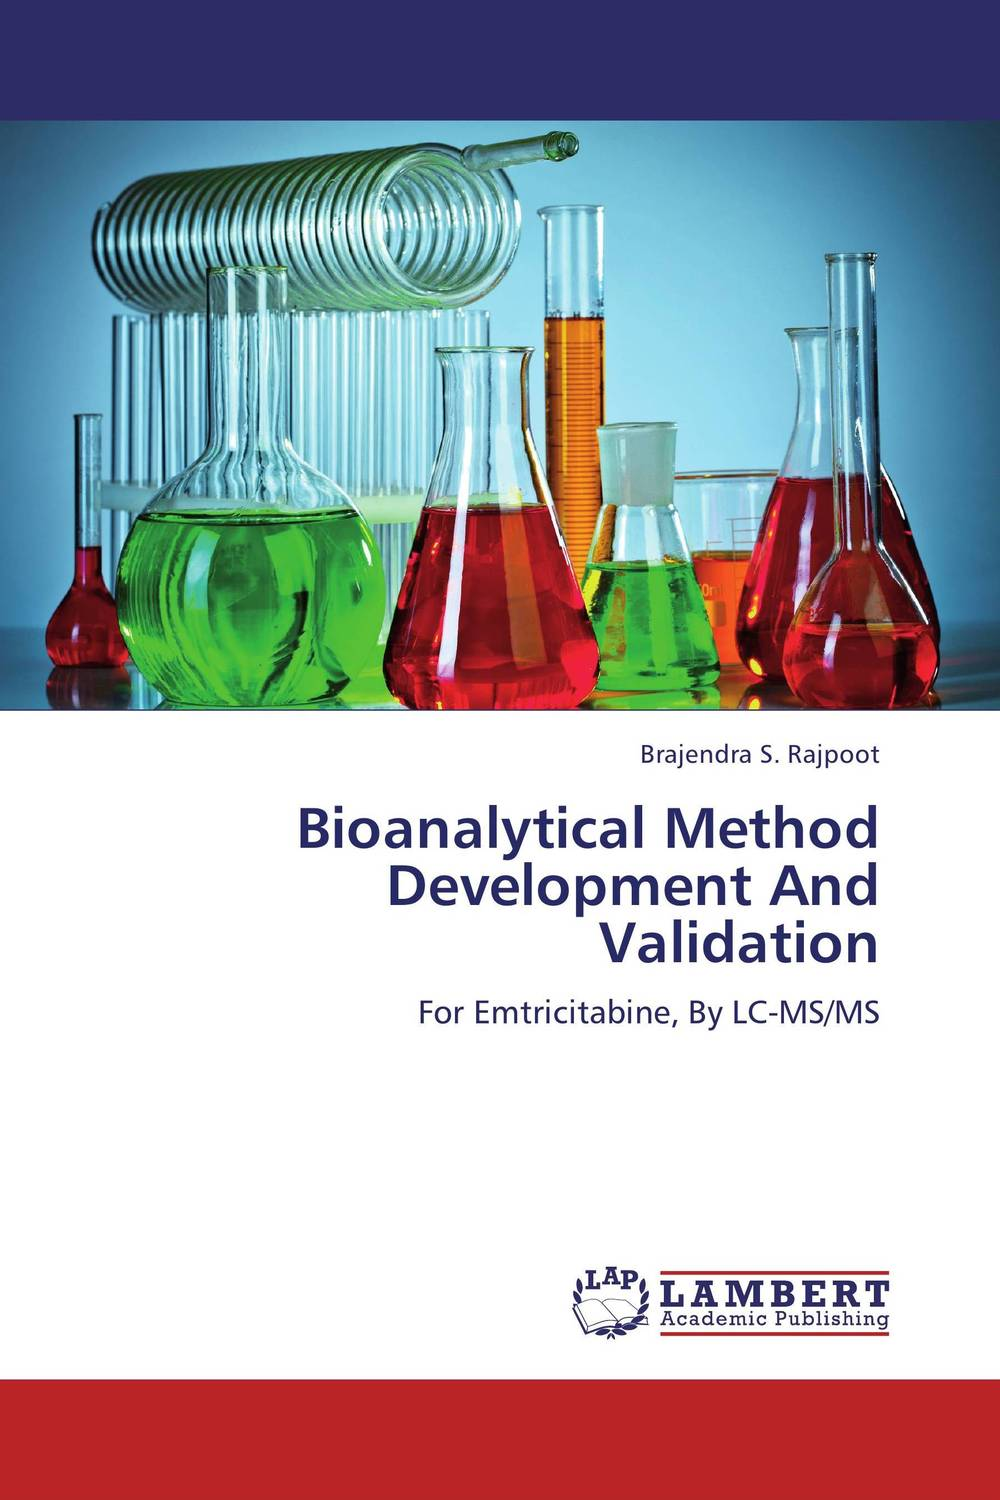 Bioanalytical Method Development And Validation  amit kumara a patel u sahoo and a k sen development and validation of anlytical methods